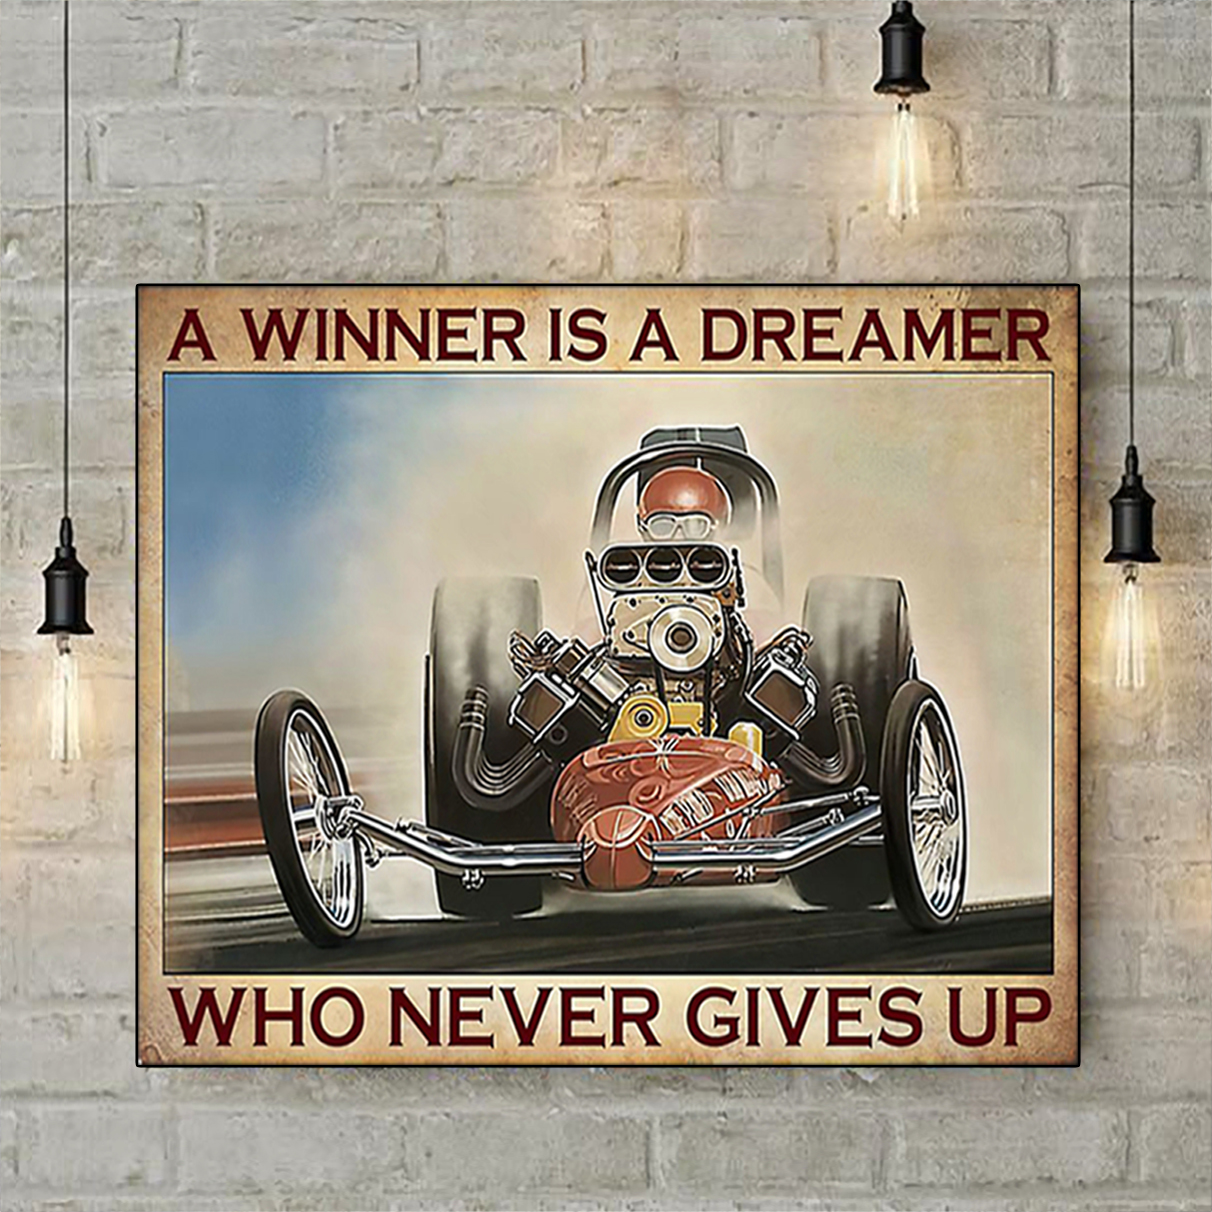 Drag racing a winner is a dreamer who never gives up poster A3